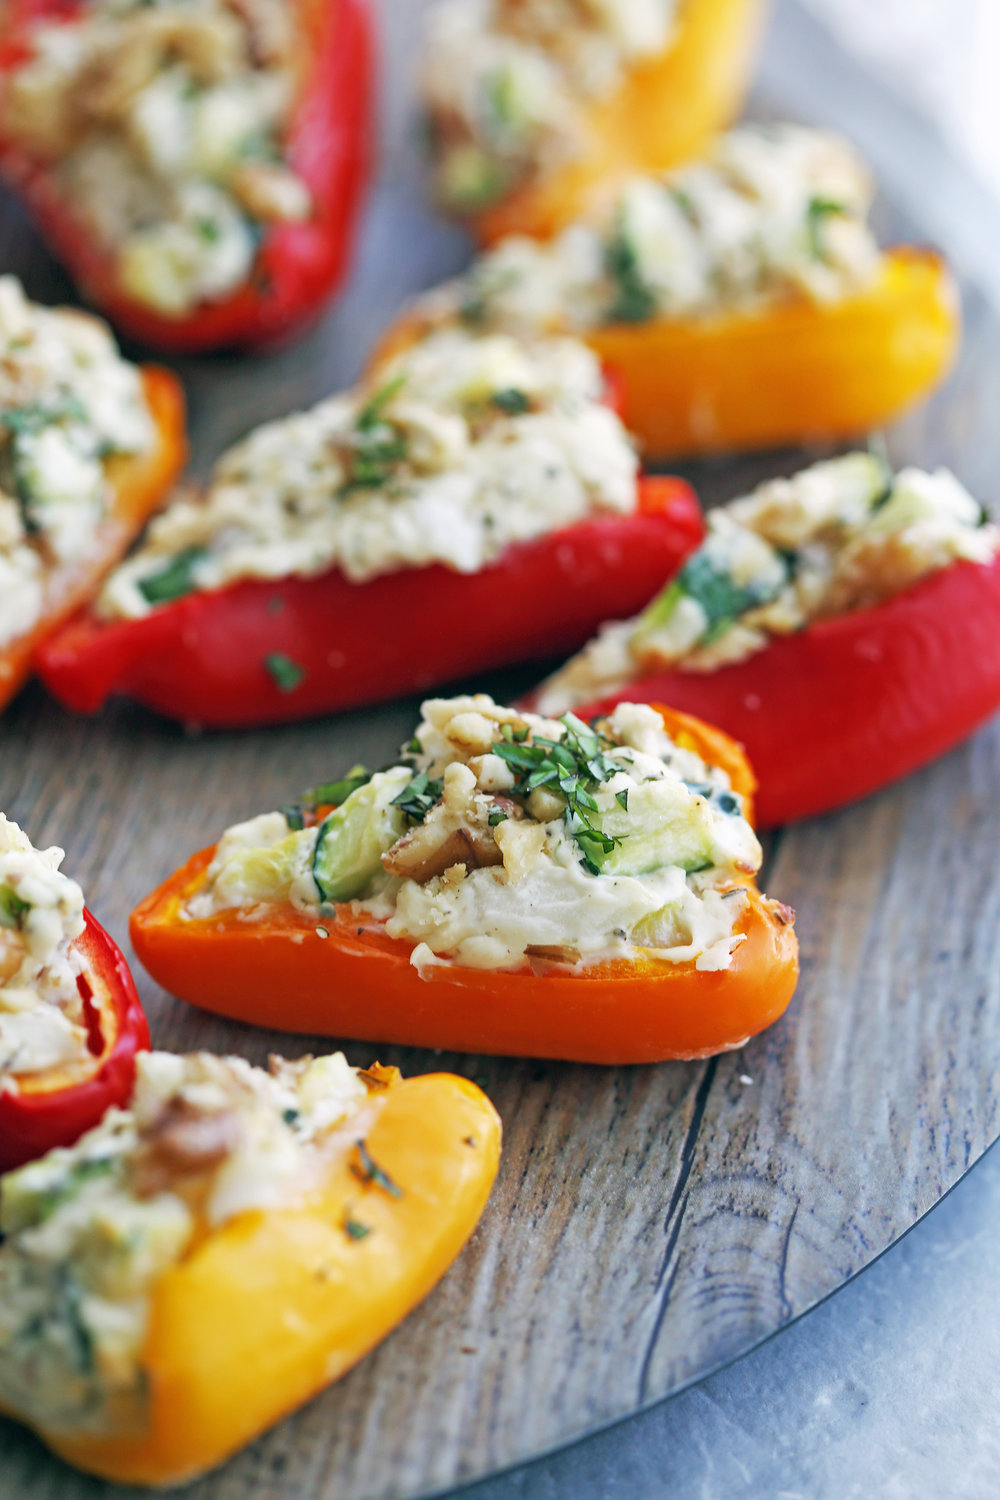 A closeup of a zucchini cream cheese mini bell pepper topped with chopped walnuts and basil on a wooden platter.